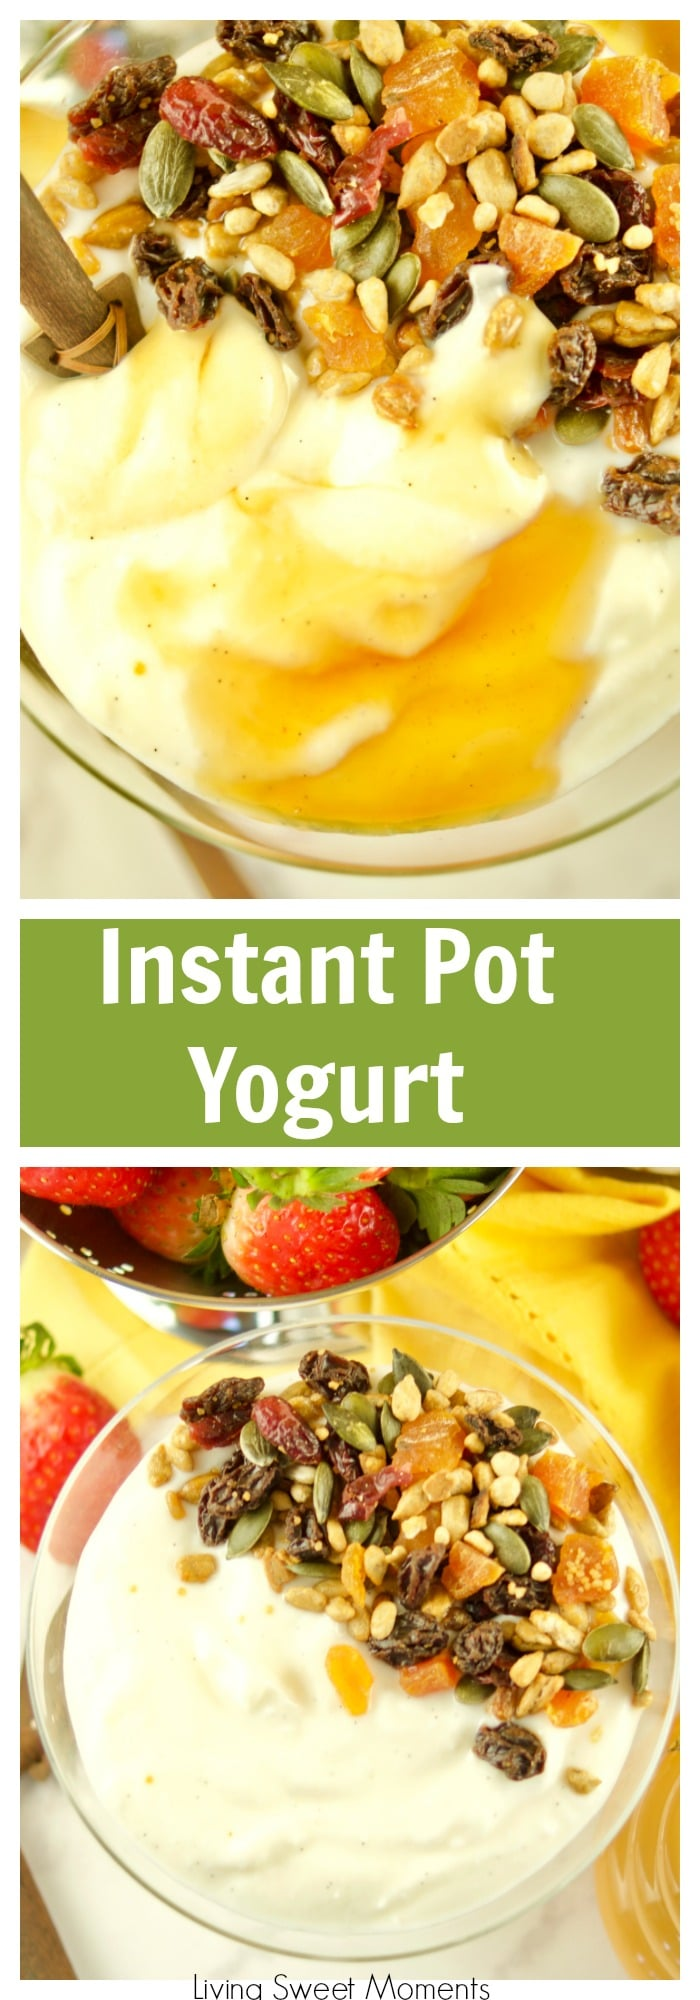 This super Easy Instant Pot Yogurt recipe requires only 1 step and 4 ingredients. No boiling, straining or checking temperature required. Make the perfect thick and creamy yogurt for breakfast and top with honey, fruit, and granola. For more instant pot recipes visit livingsweetmoments.com